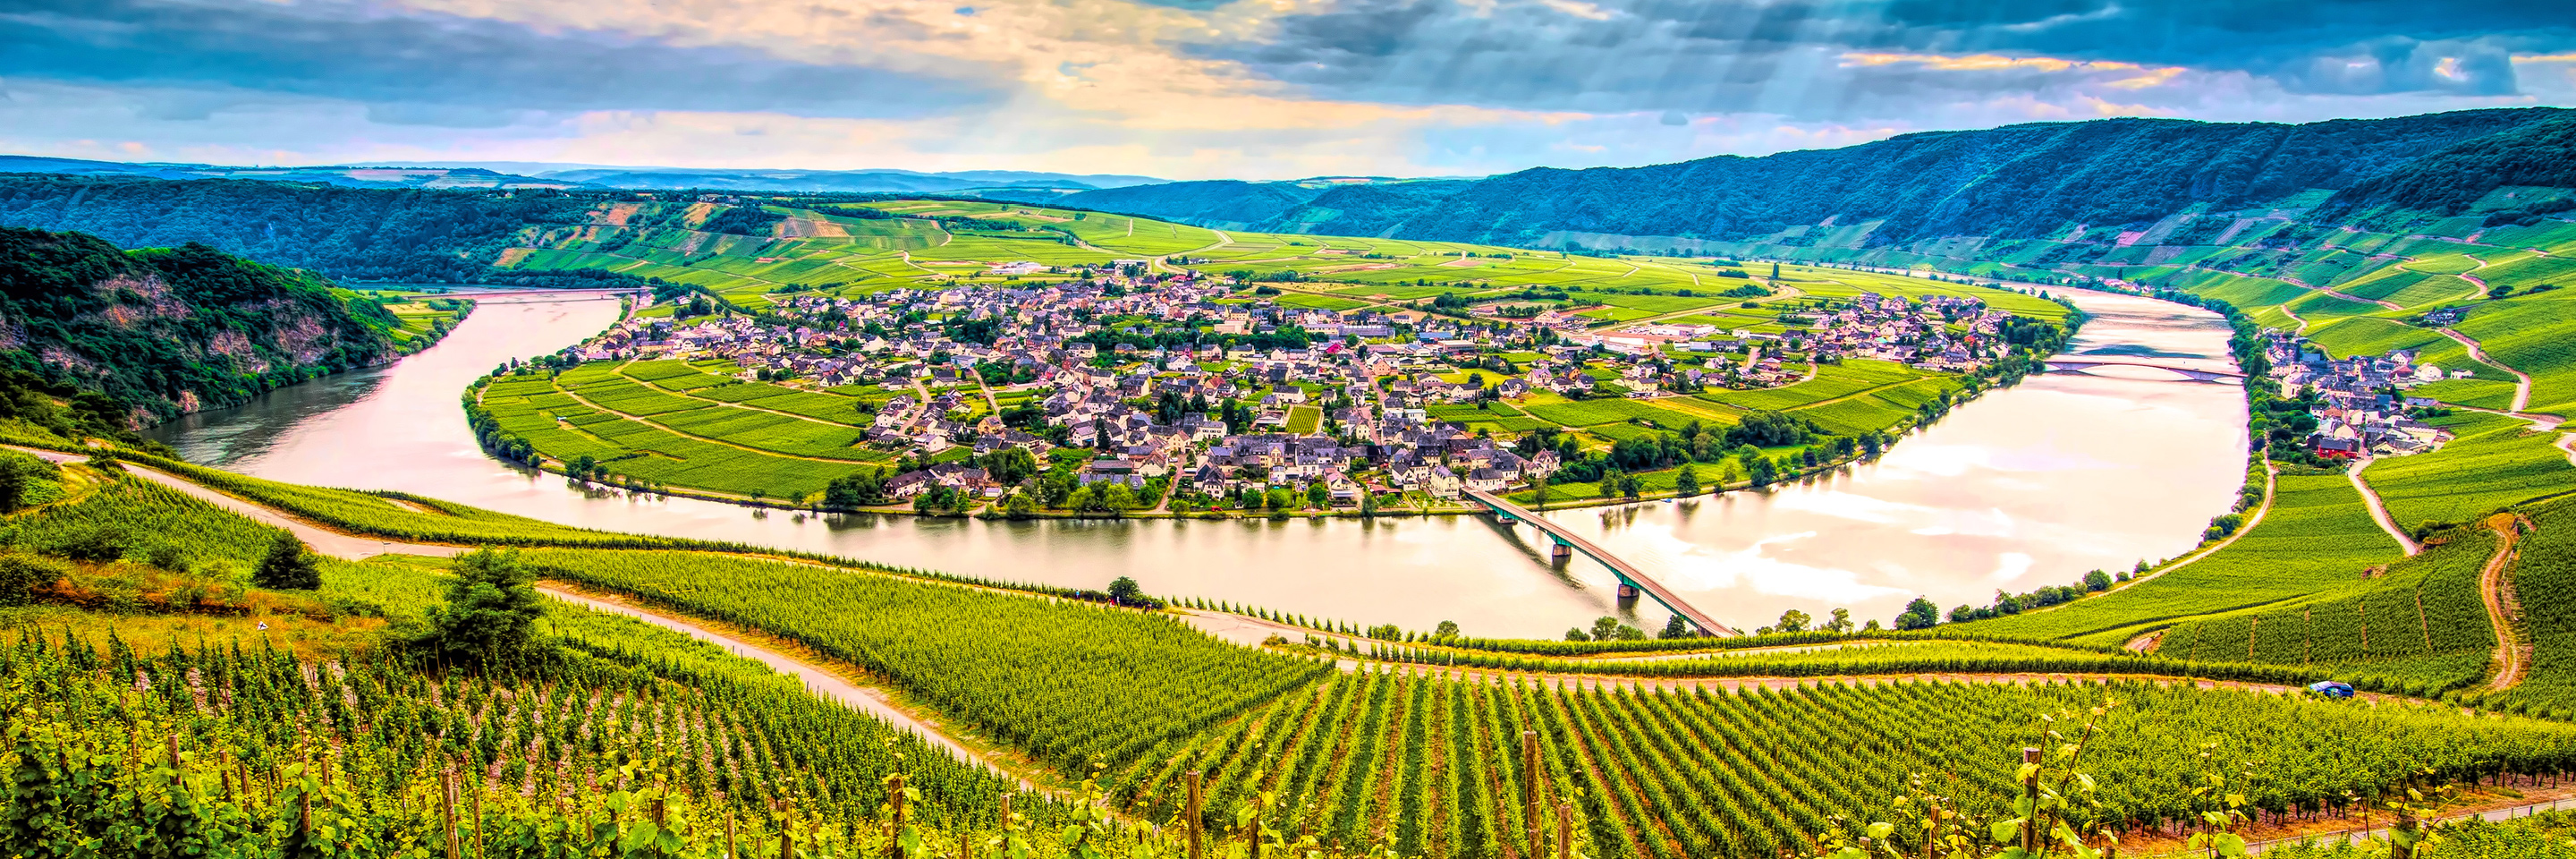 The Rhine & Moselle: Canals, Vineyards & Castles (Southbound)